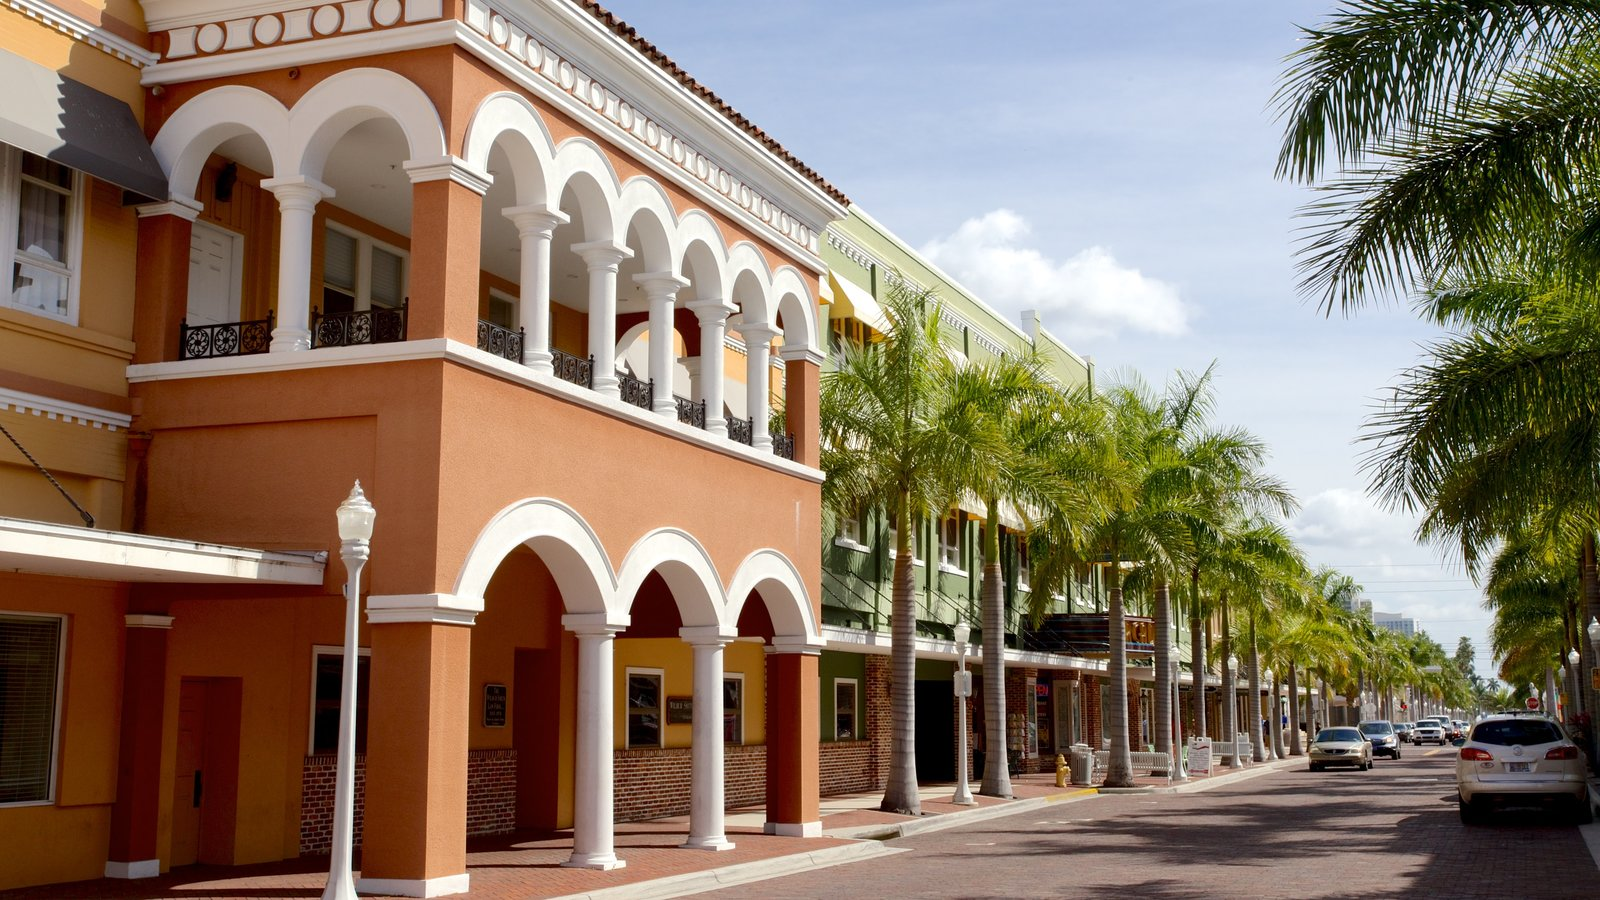 Fort Myers showing heritage architecture